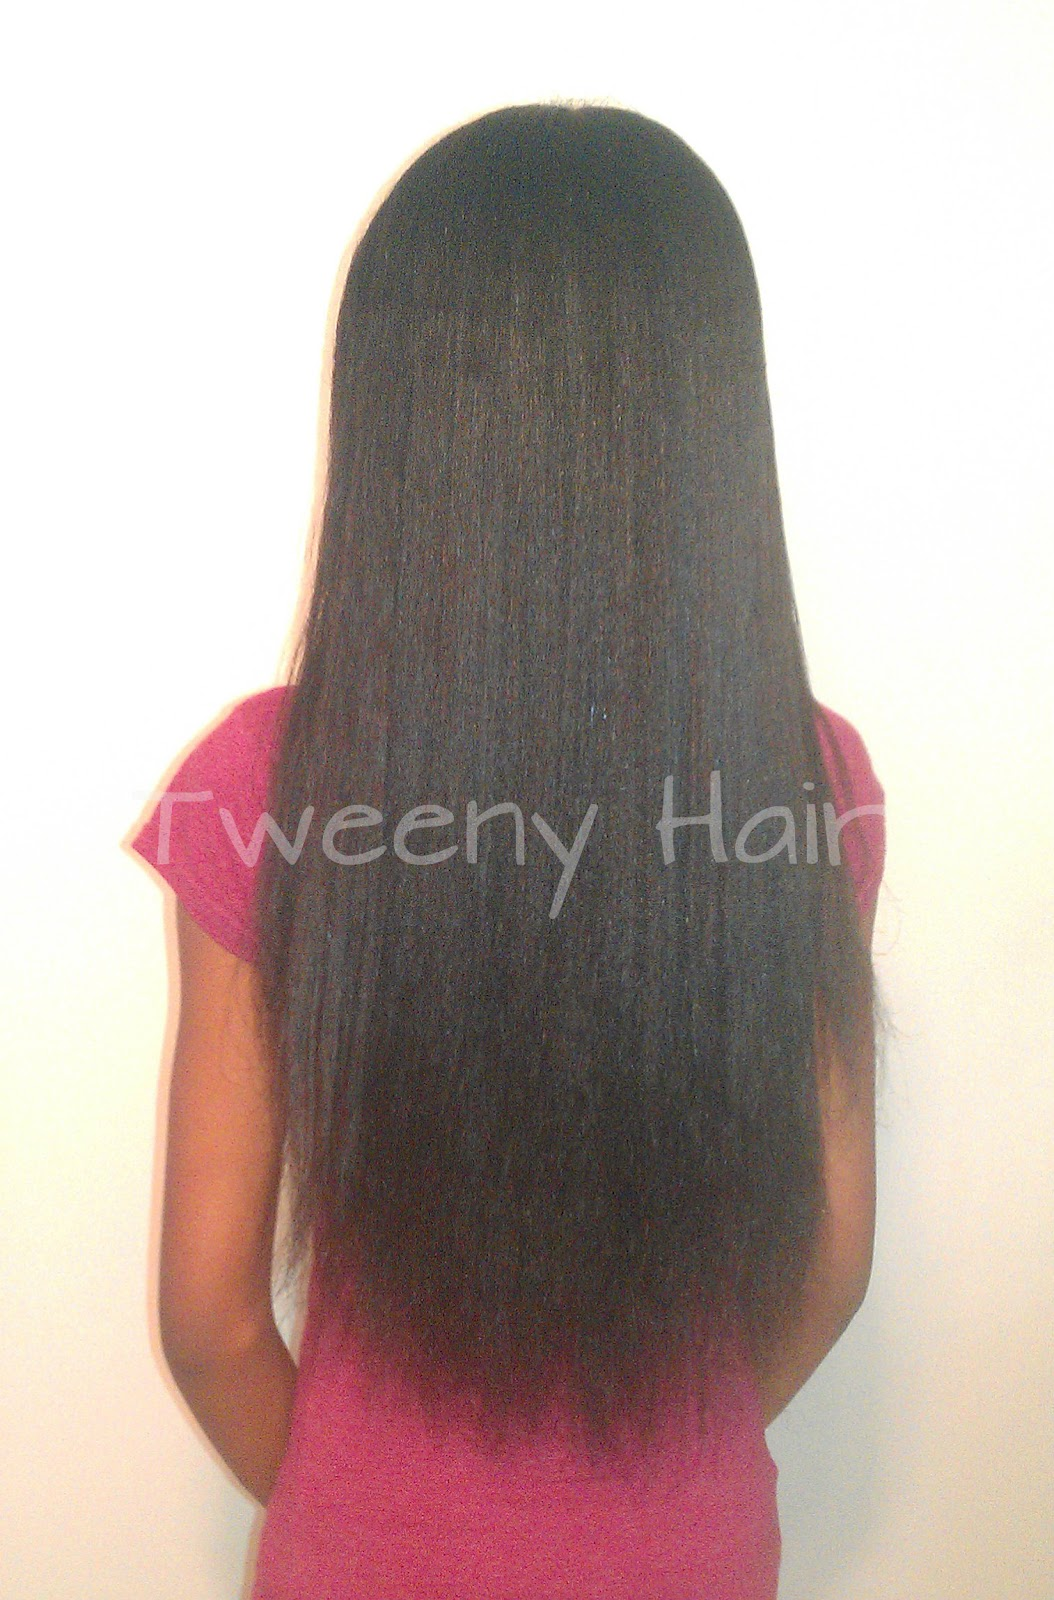 Waist Length Hair http://beadsbraidsbeyond.blogspot.com/2012/04/guest-post-straightened-natural-hair.html